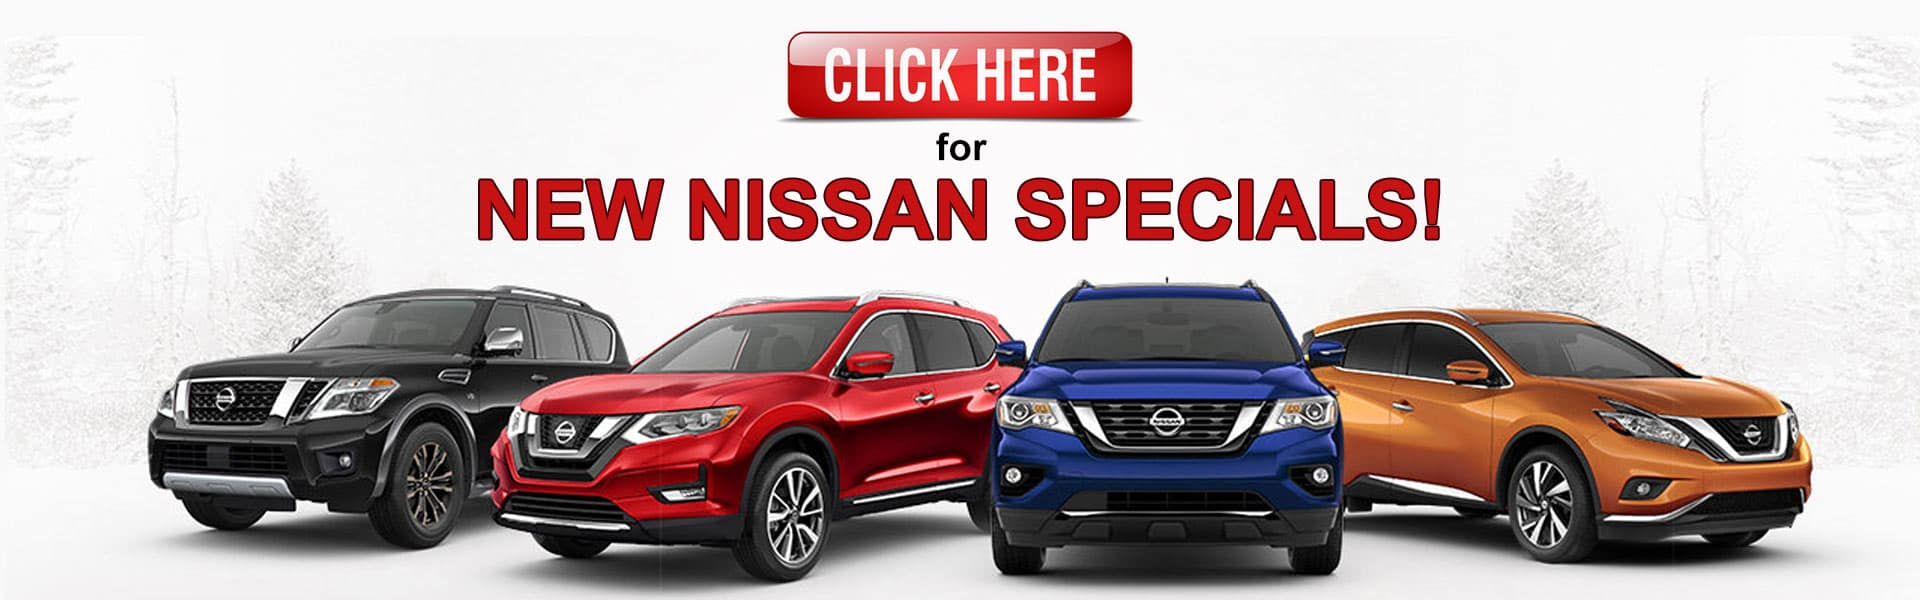 Specials at Nissan Dealer in Boone NC, AutoStar Nissan